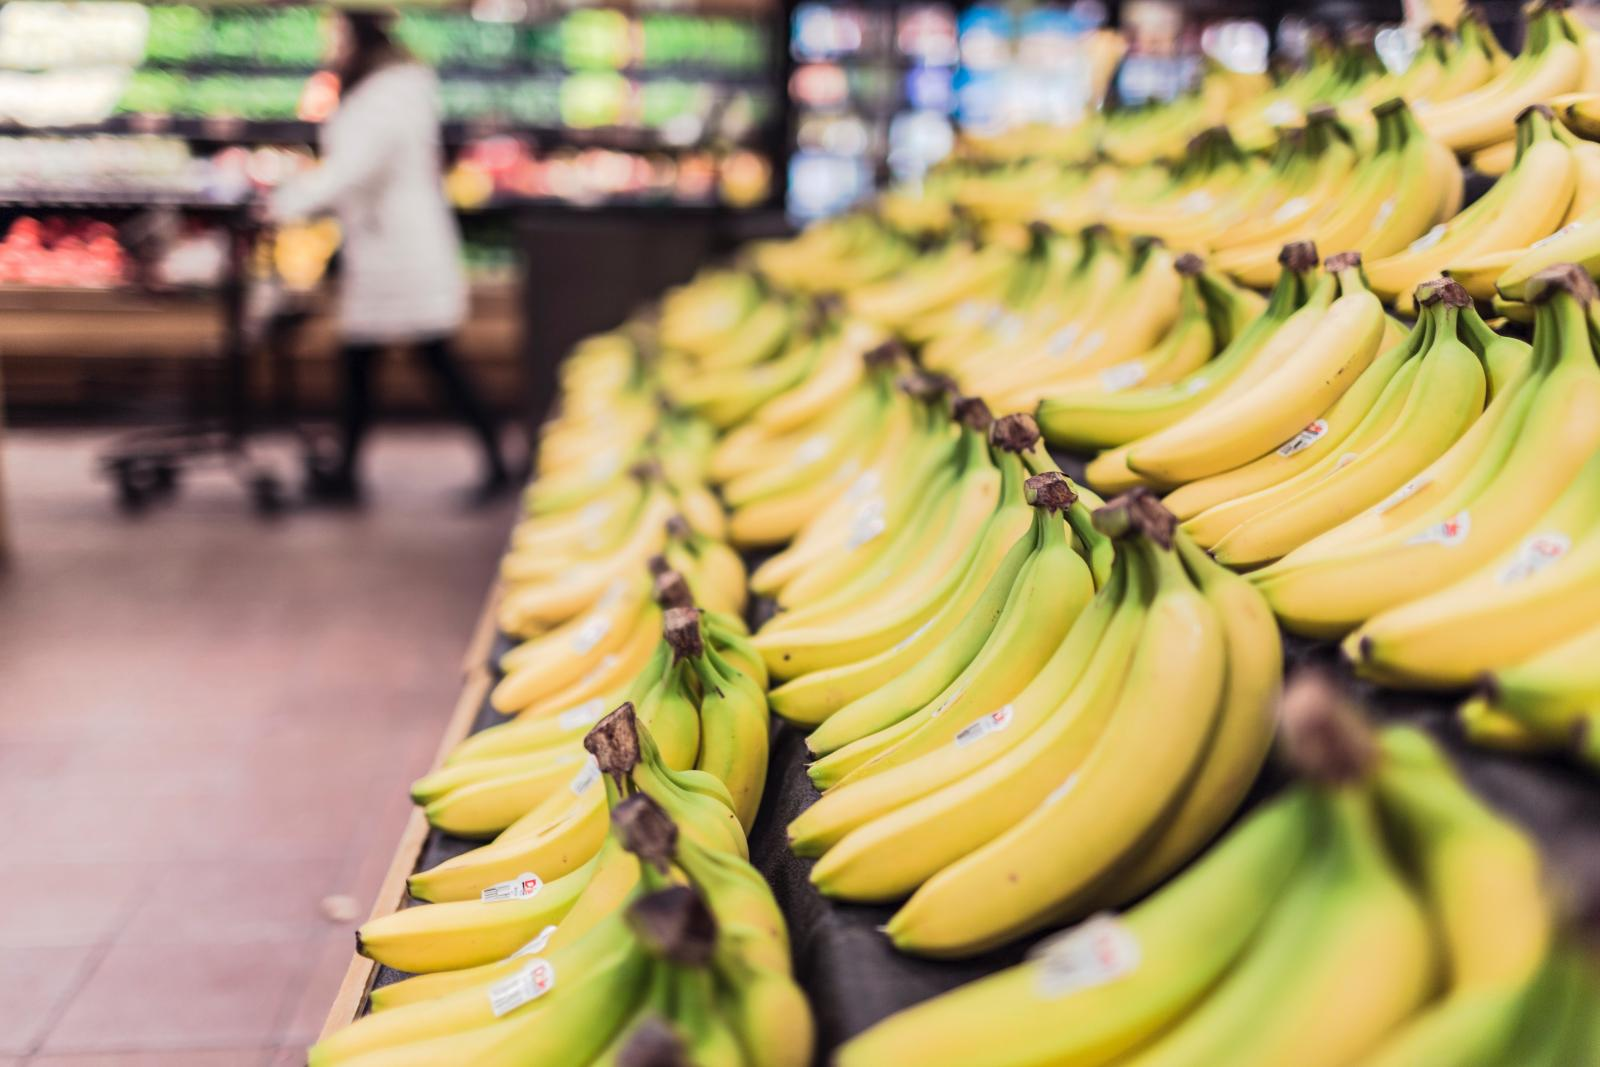 Bananas on shelves. Credit: Pexels